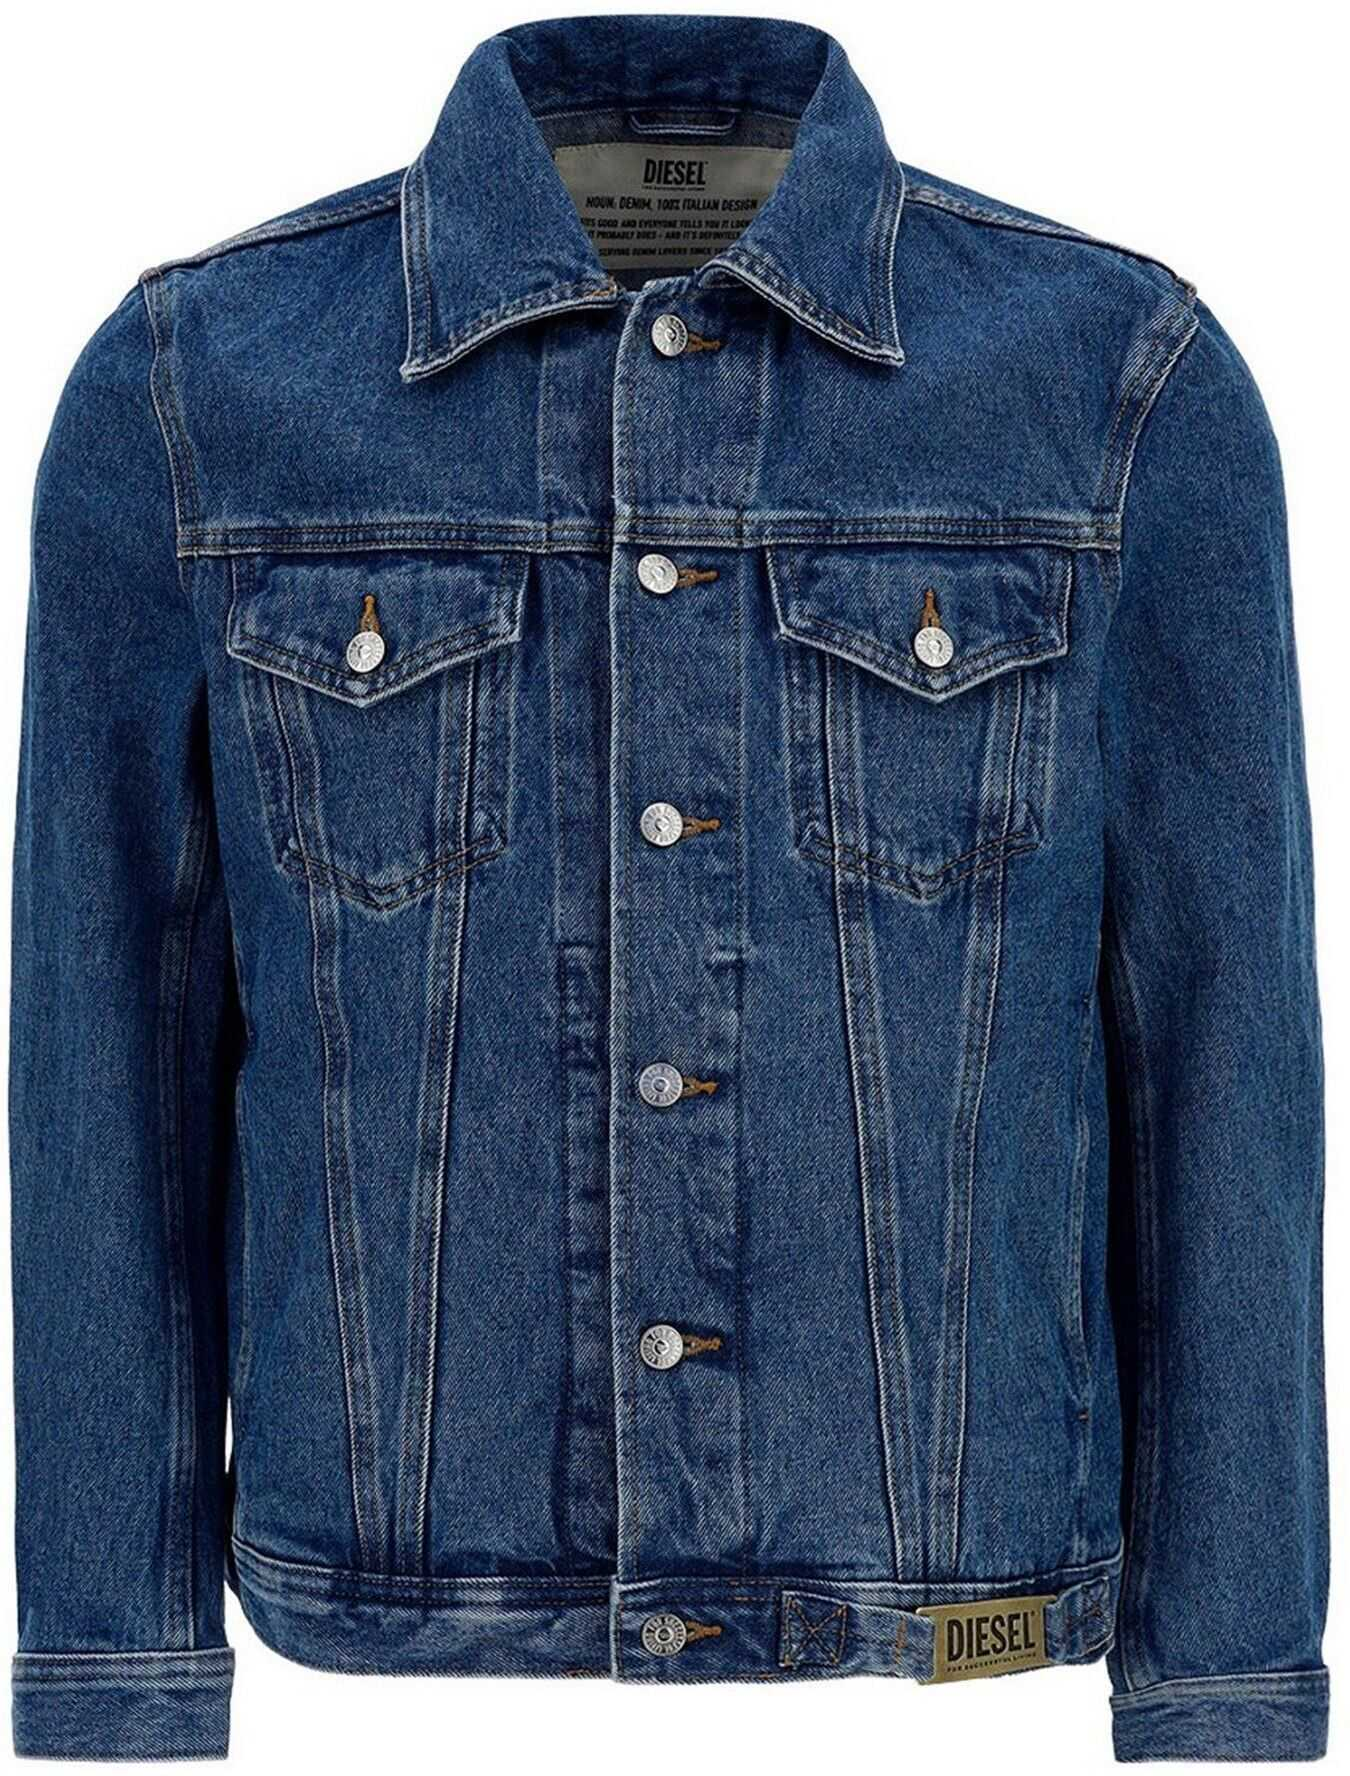 Diesel Denim Nhill-C1 Jacket In Blue Blue imagine